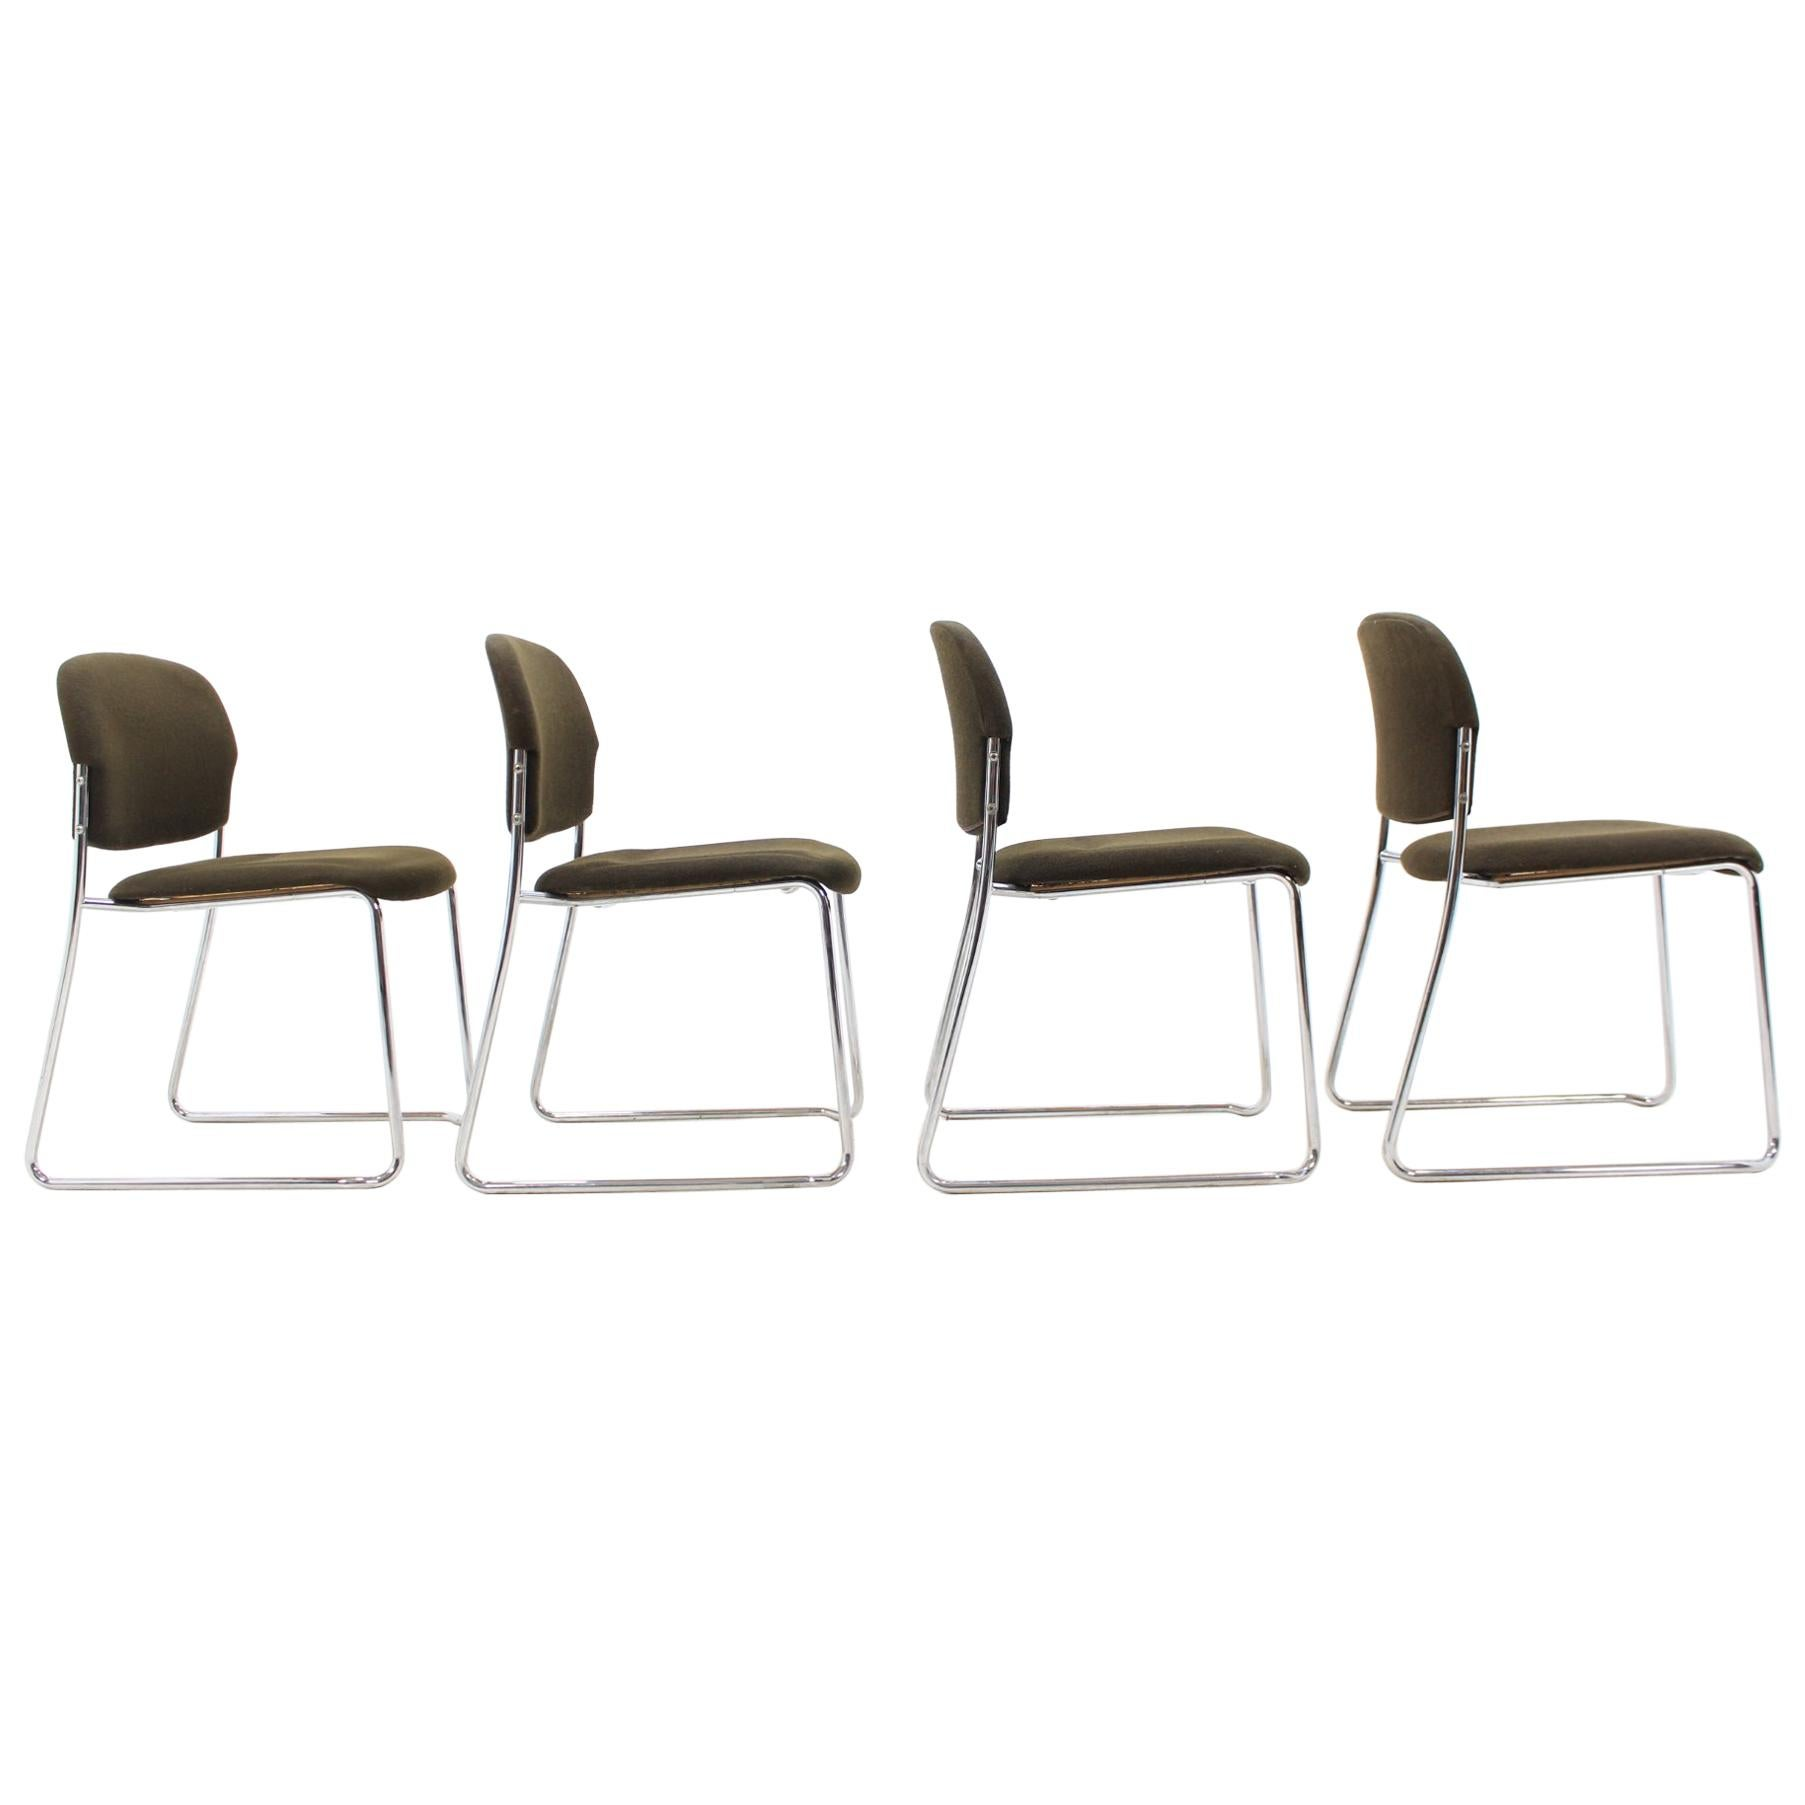 Set of Four Gerd Lange Chairs by Drabert, 1980s